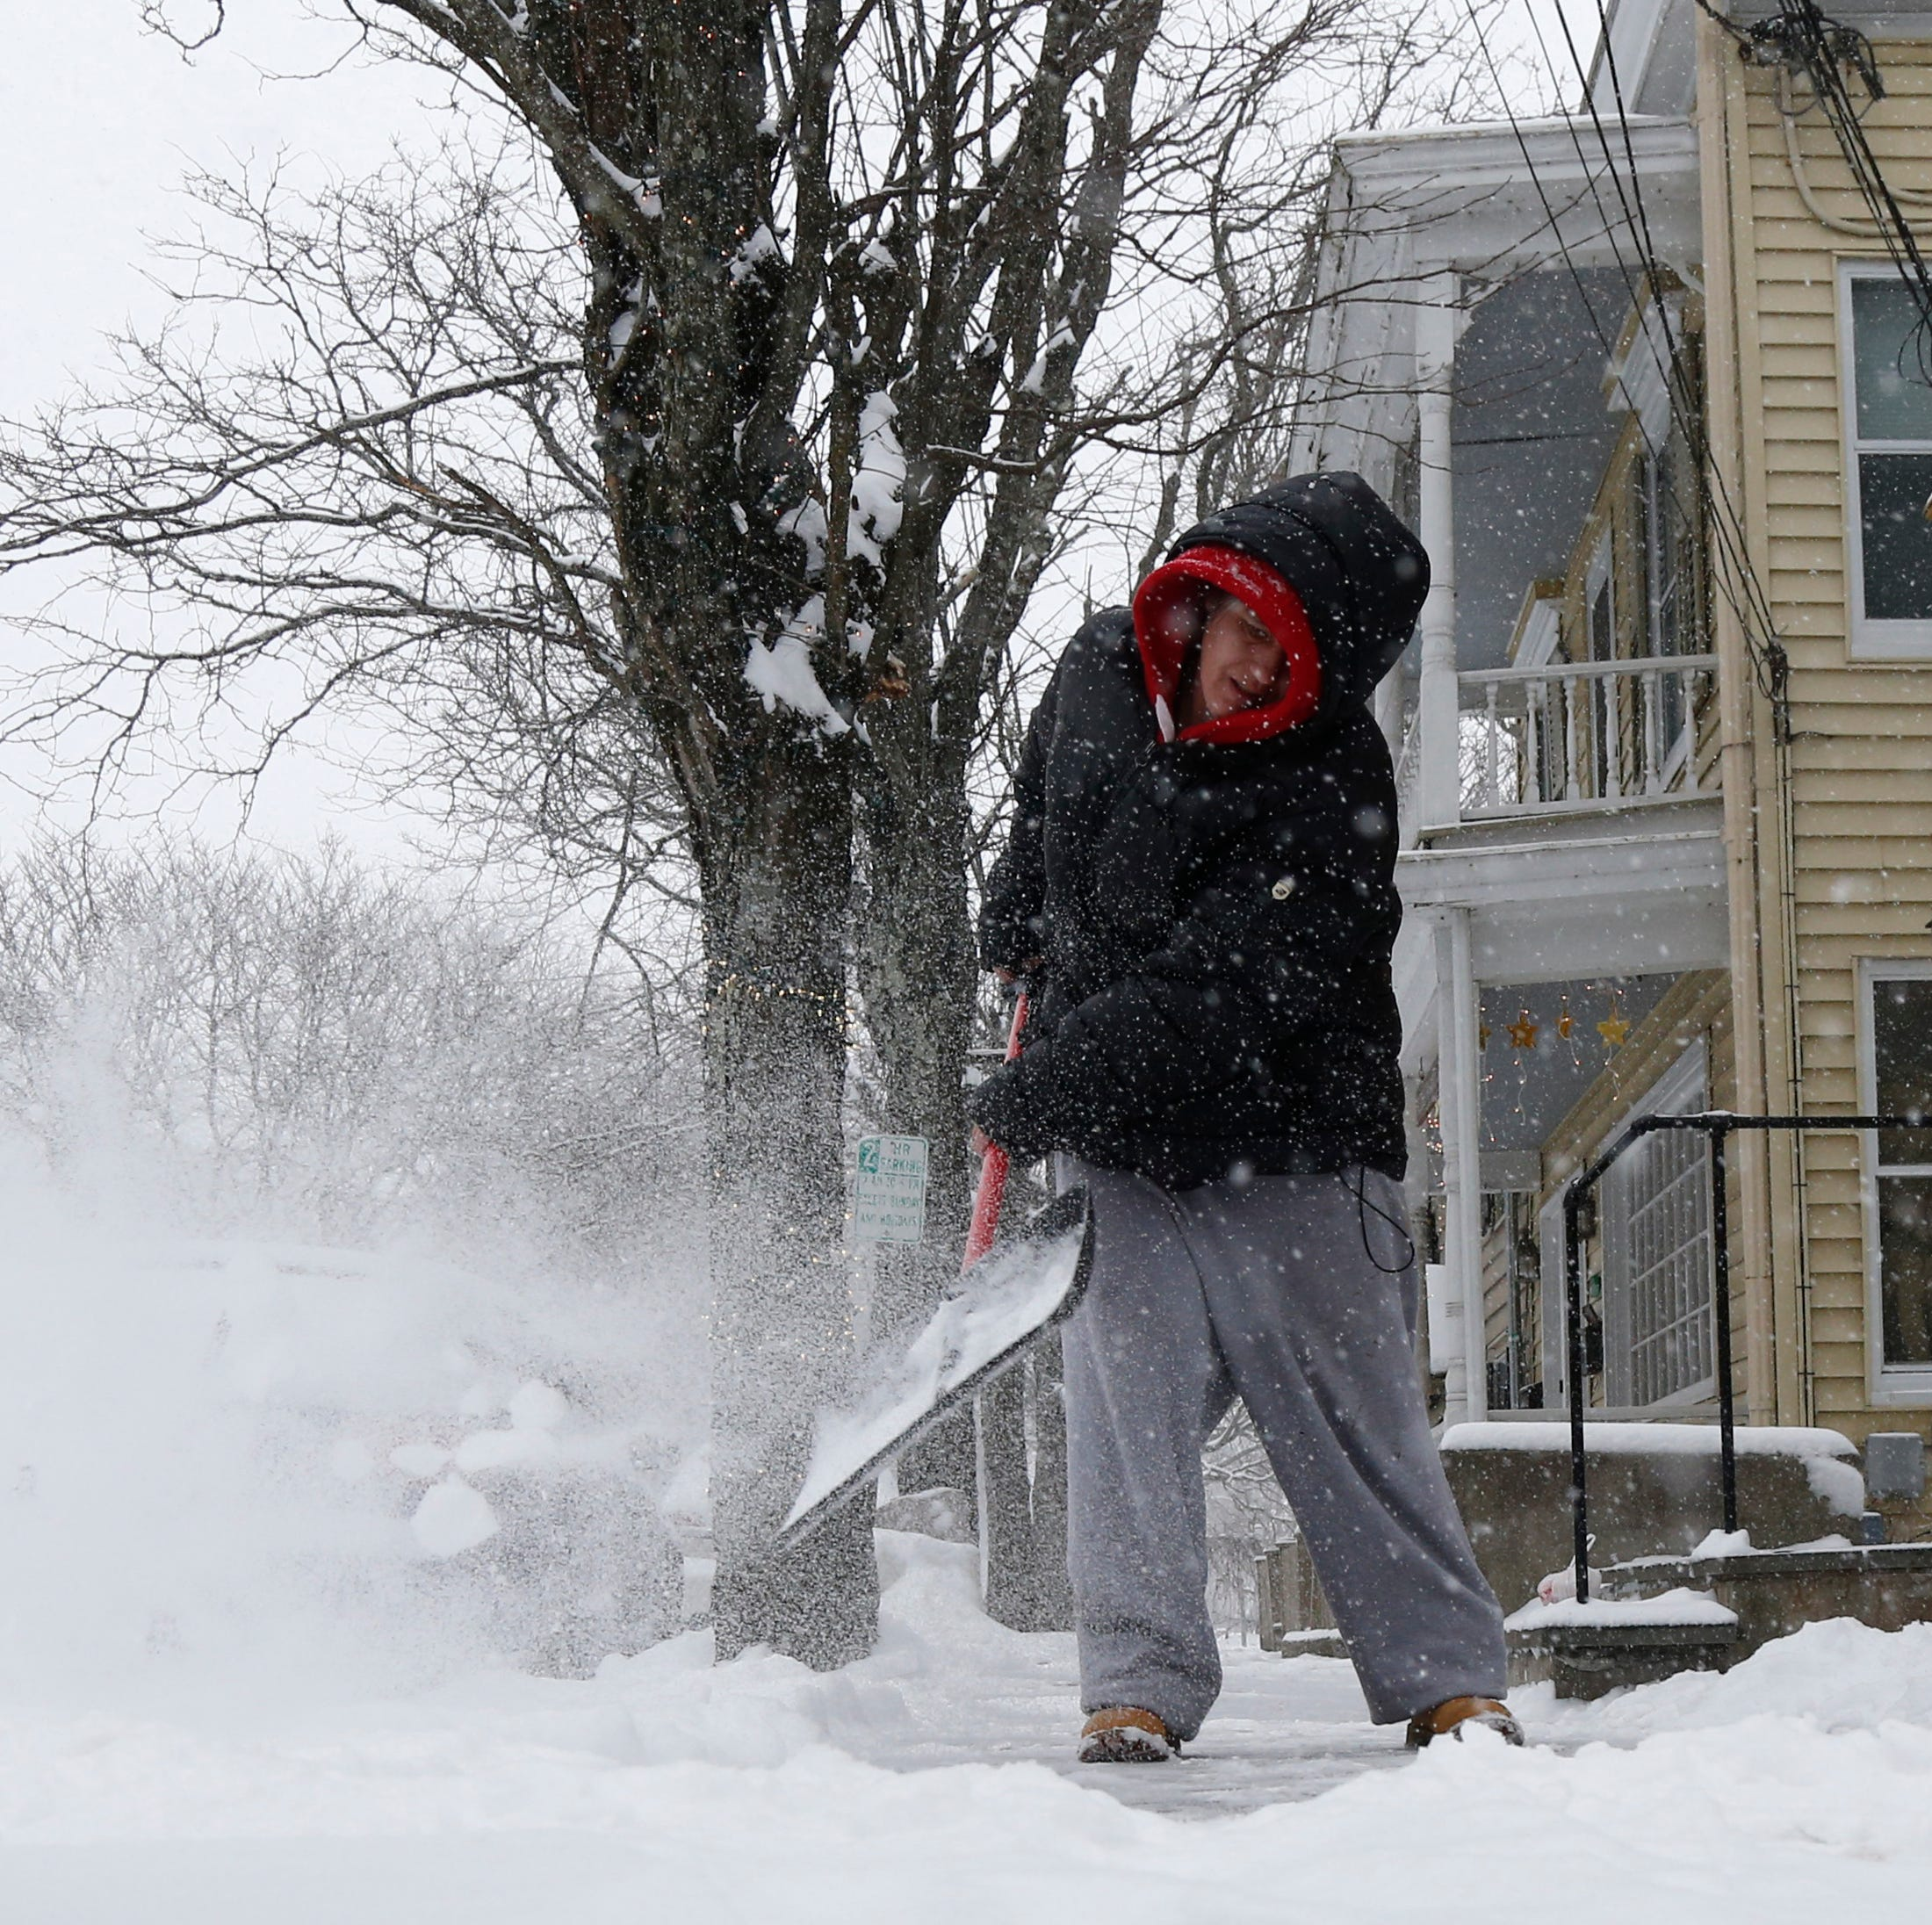 Idania Williams shovels the snow in front of her neighbor's restaurant on Market Street in Rhinebeck on February 12, 2019.